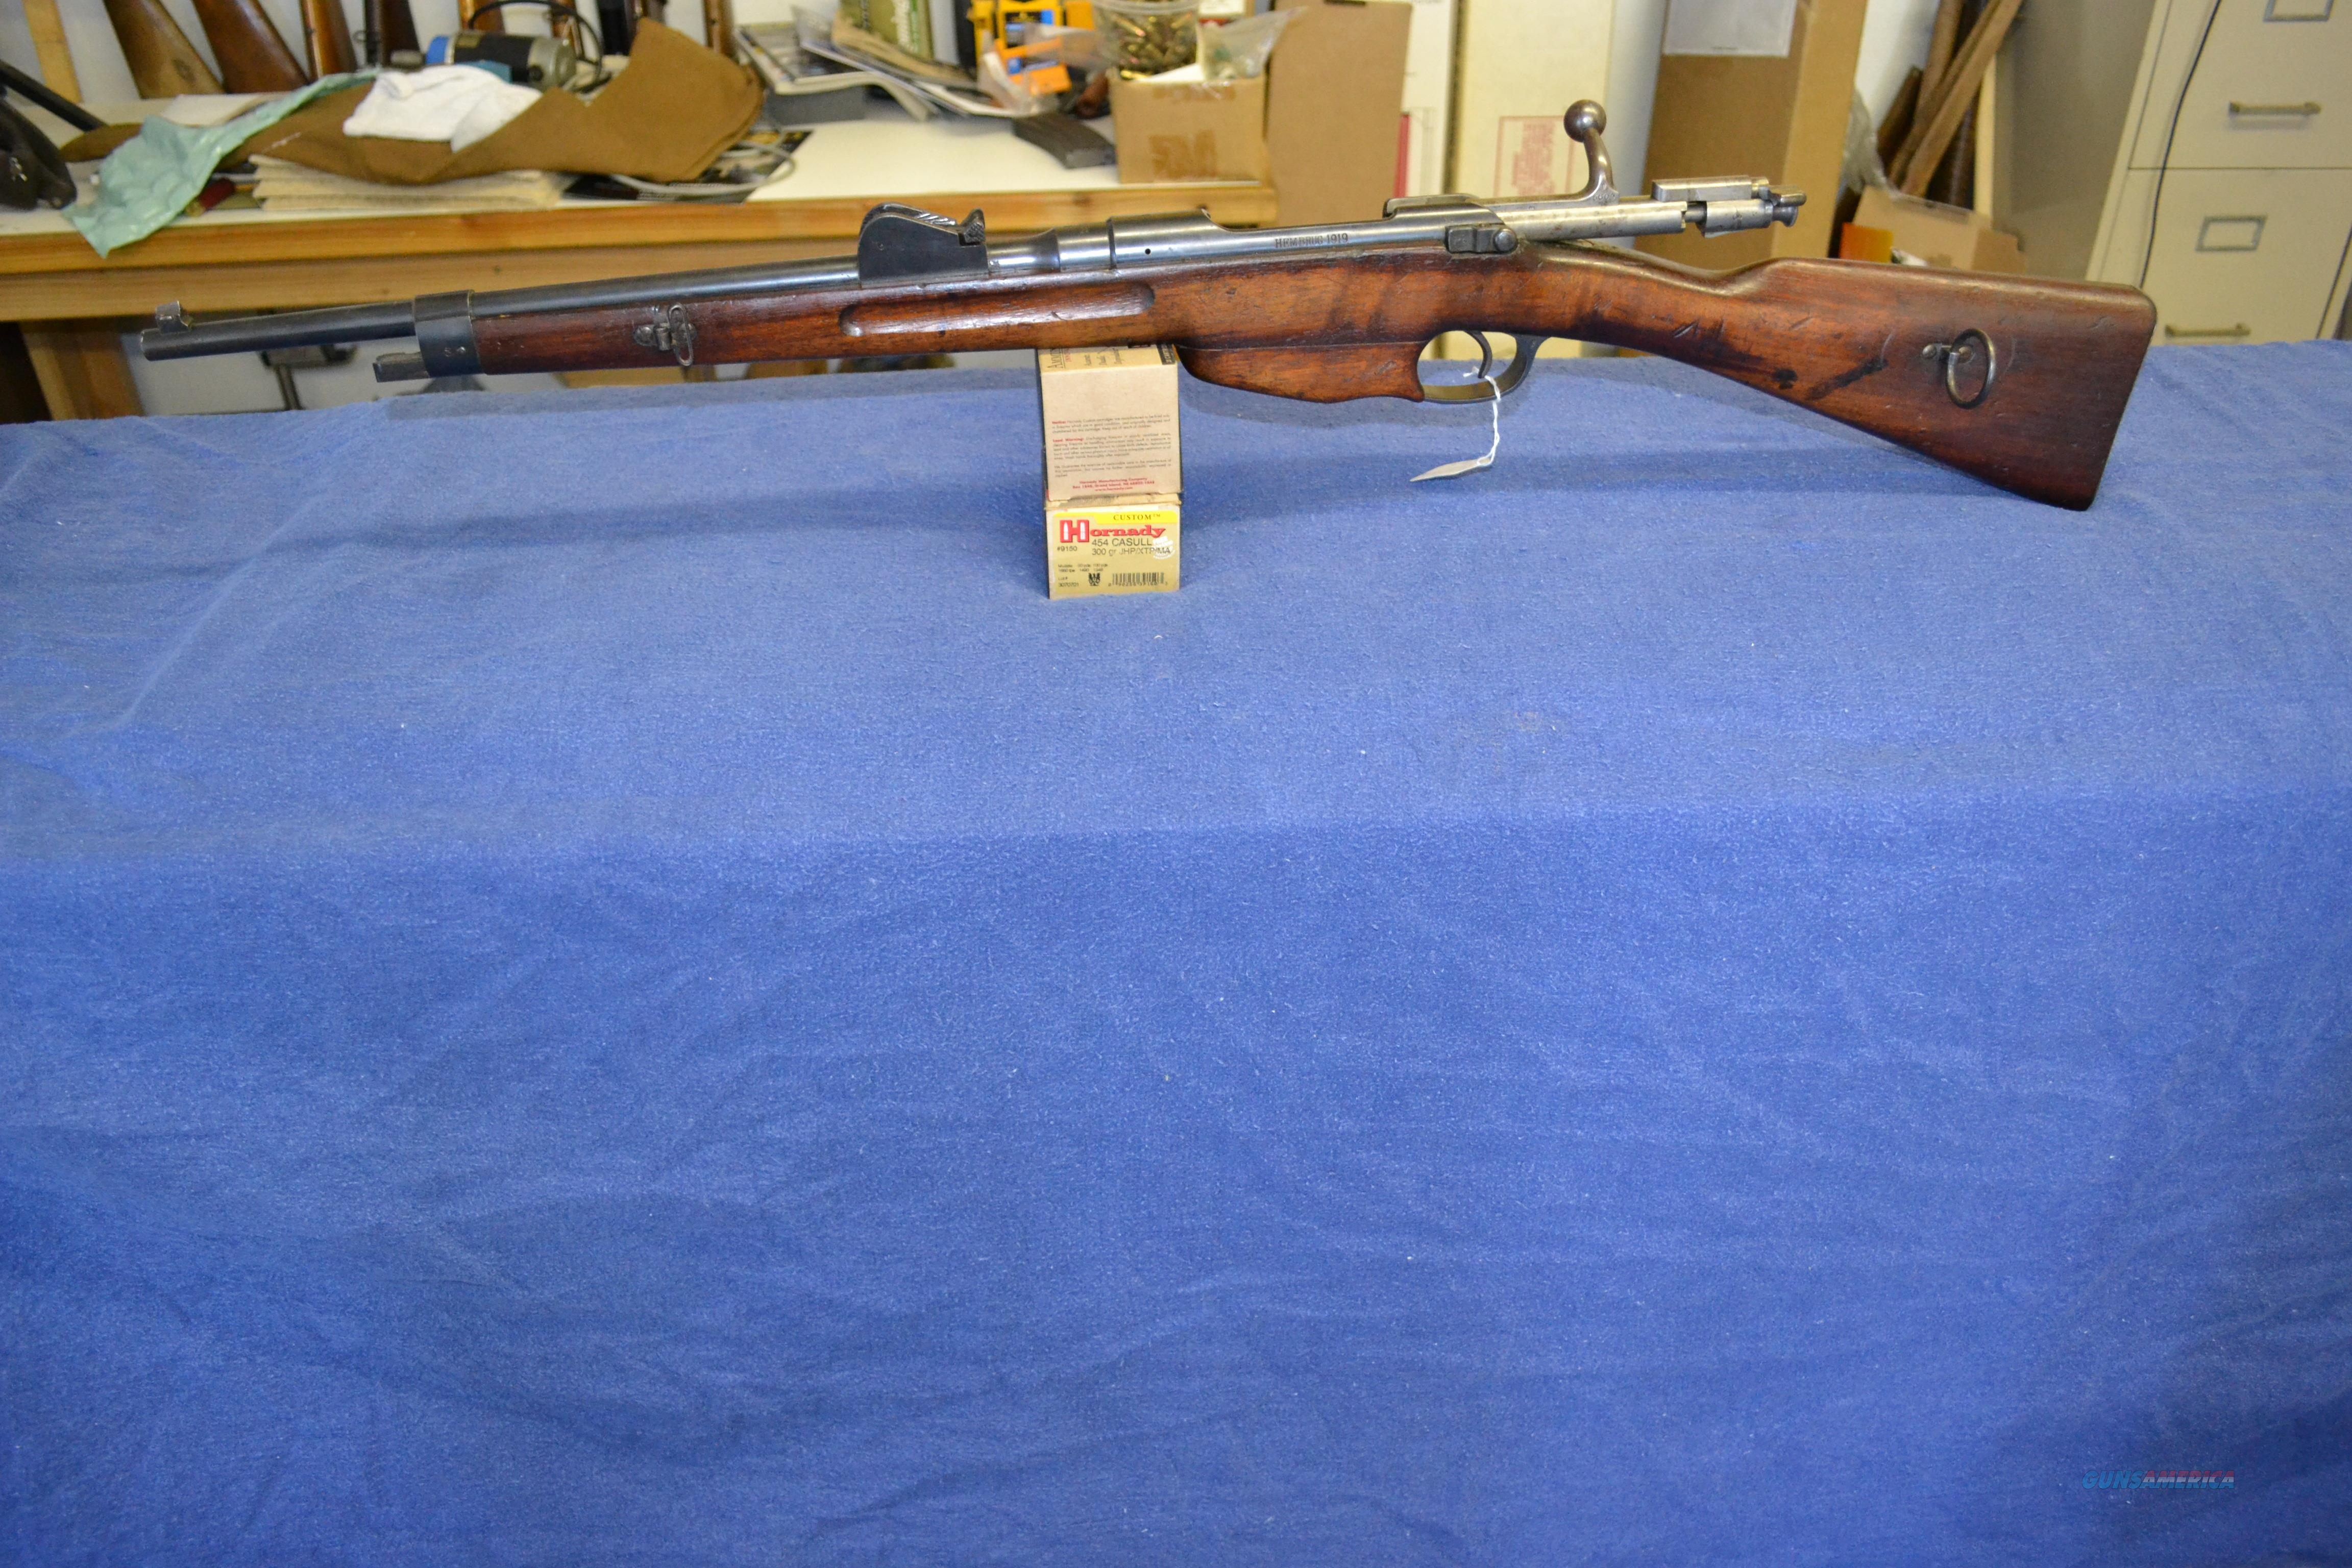 Dutch/Netherlands cavalry carbine in 6 5 X 50 M    for sale